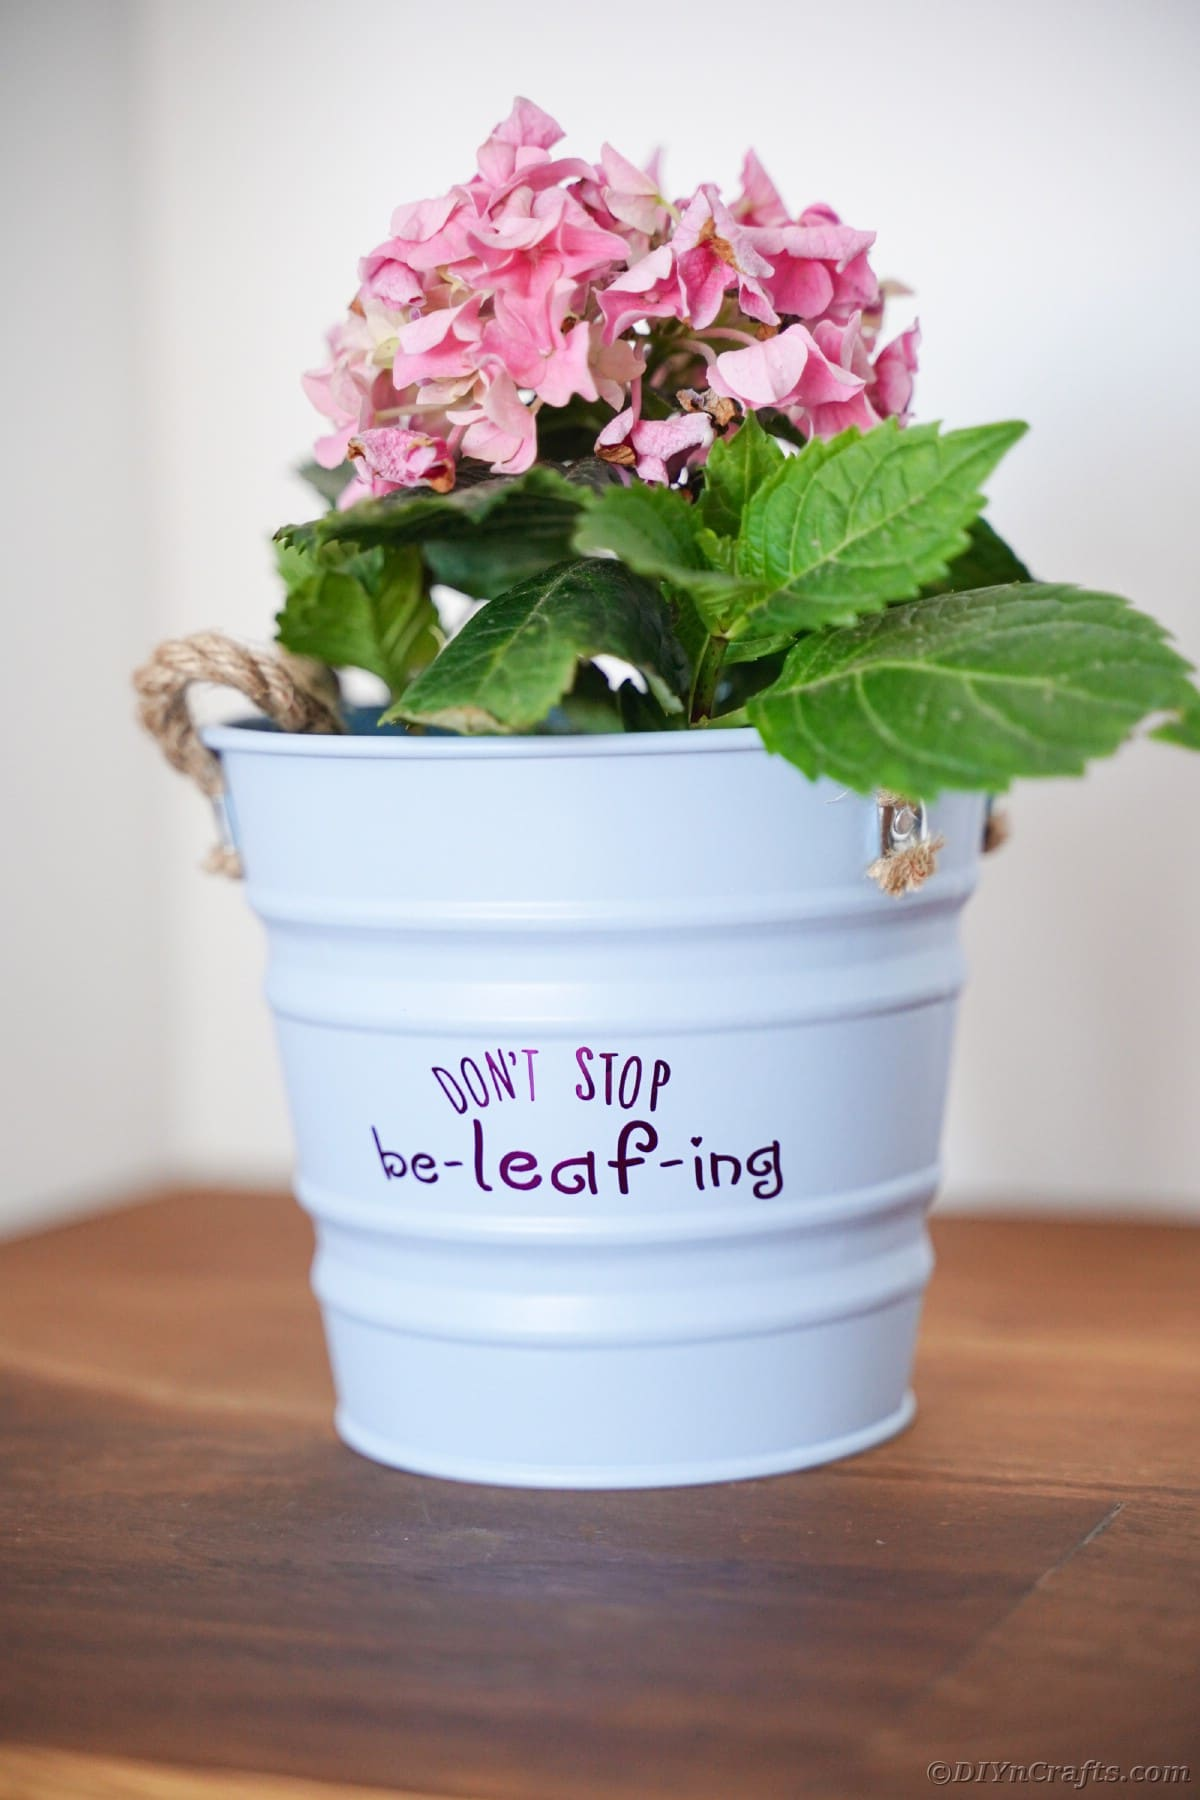 White bucket with purple message on table